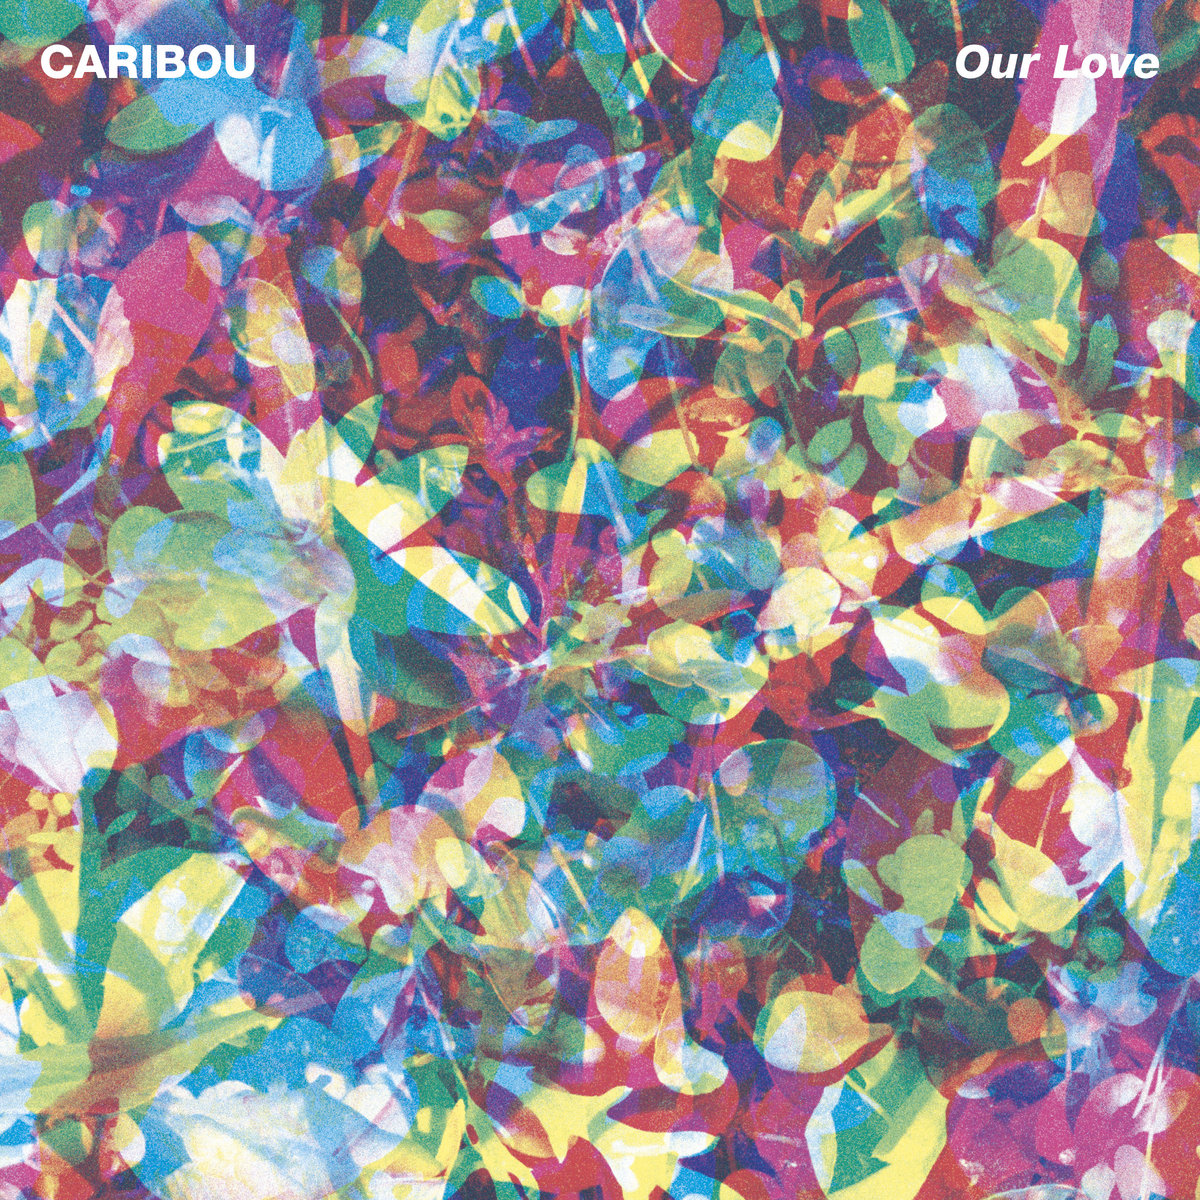 Caribou, Our Love